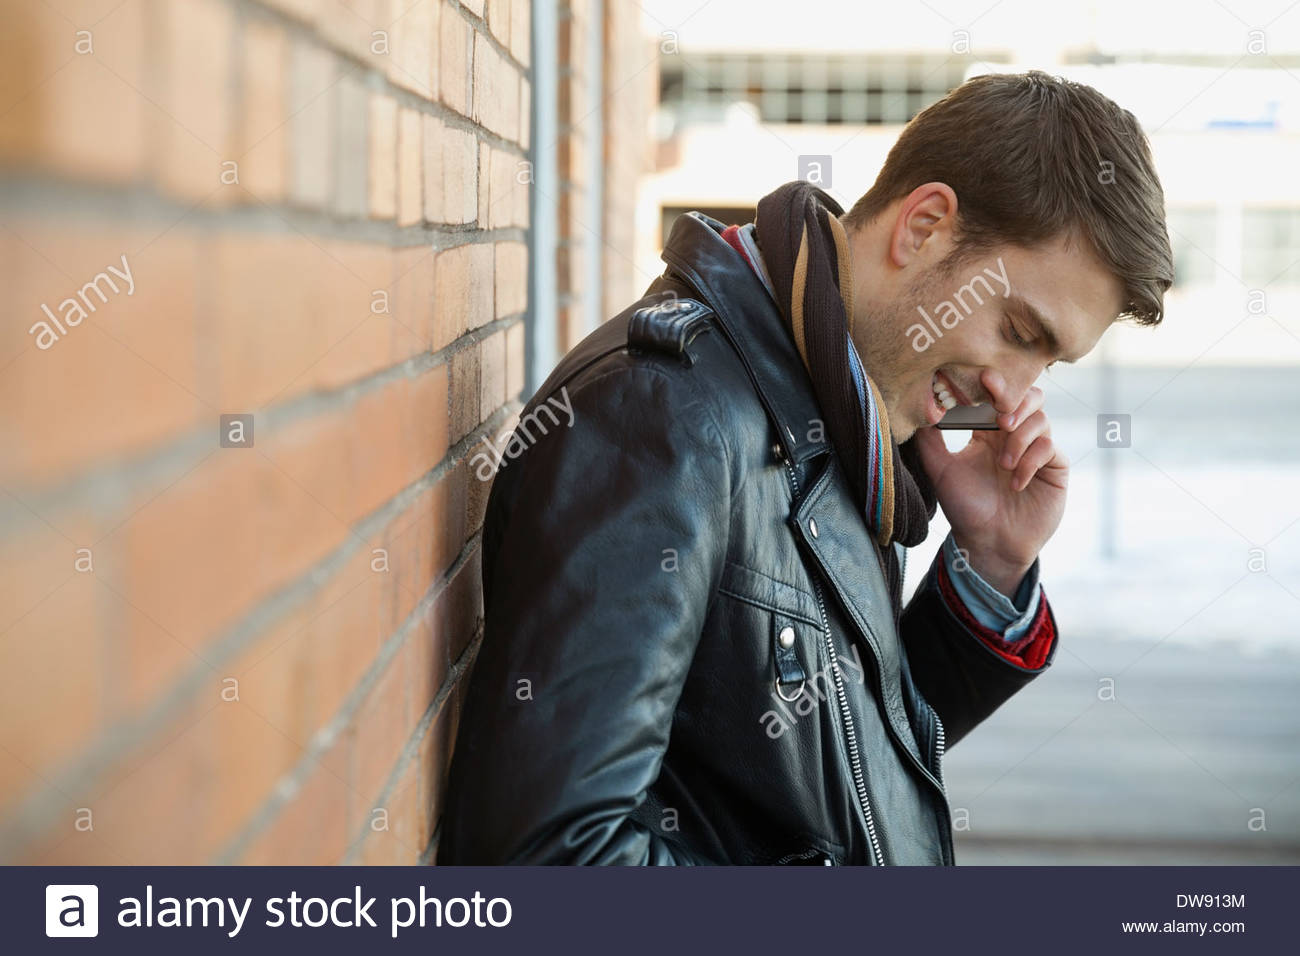 Smiling man answering smart phone outdoors Stock Photo